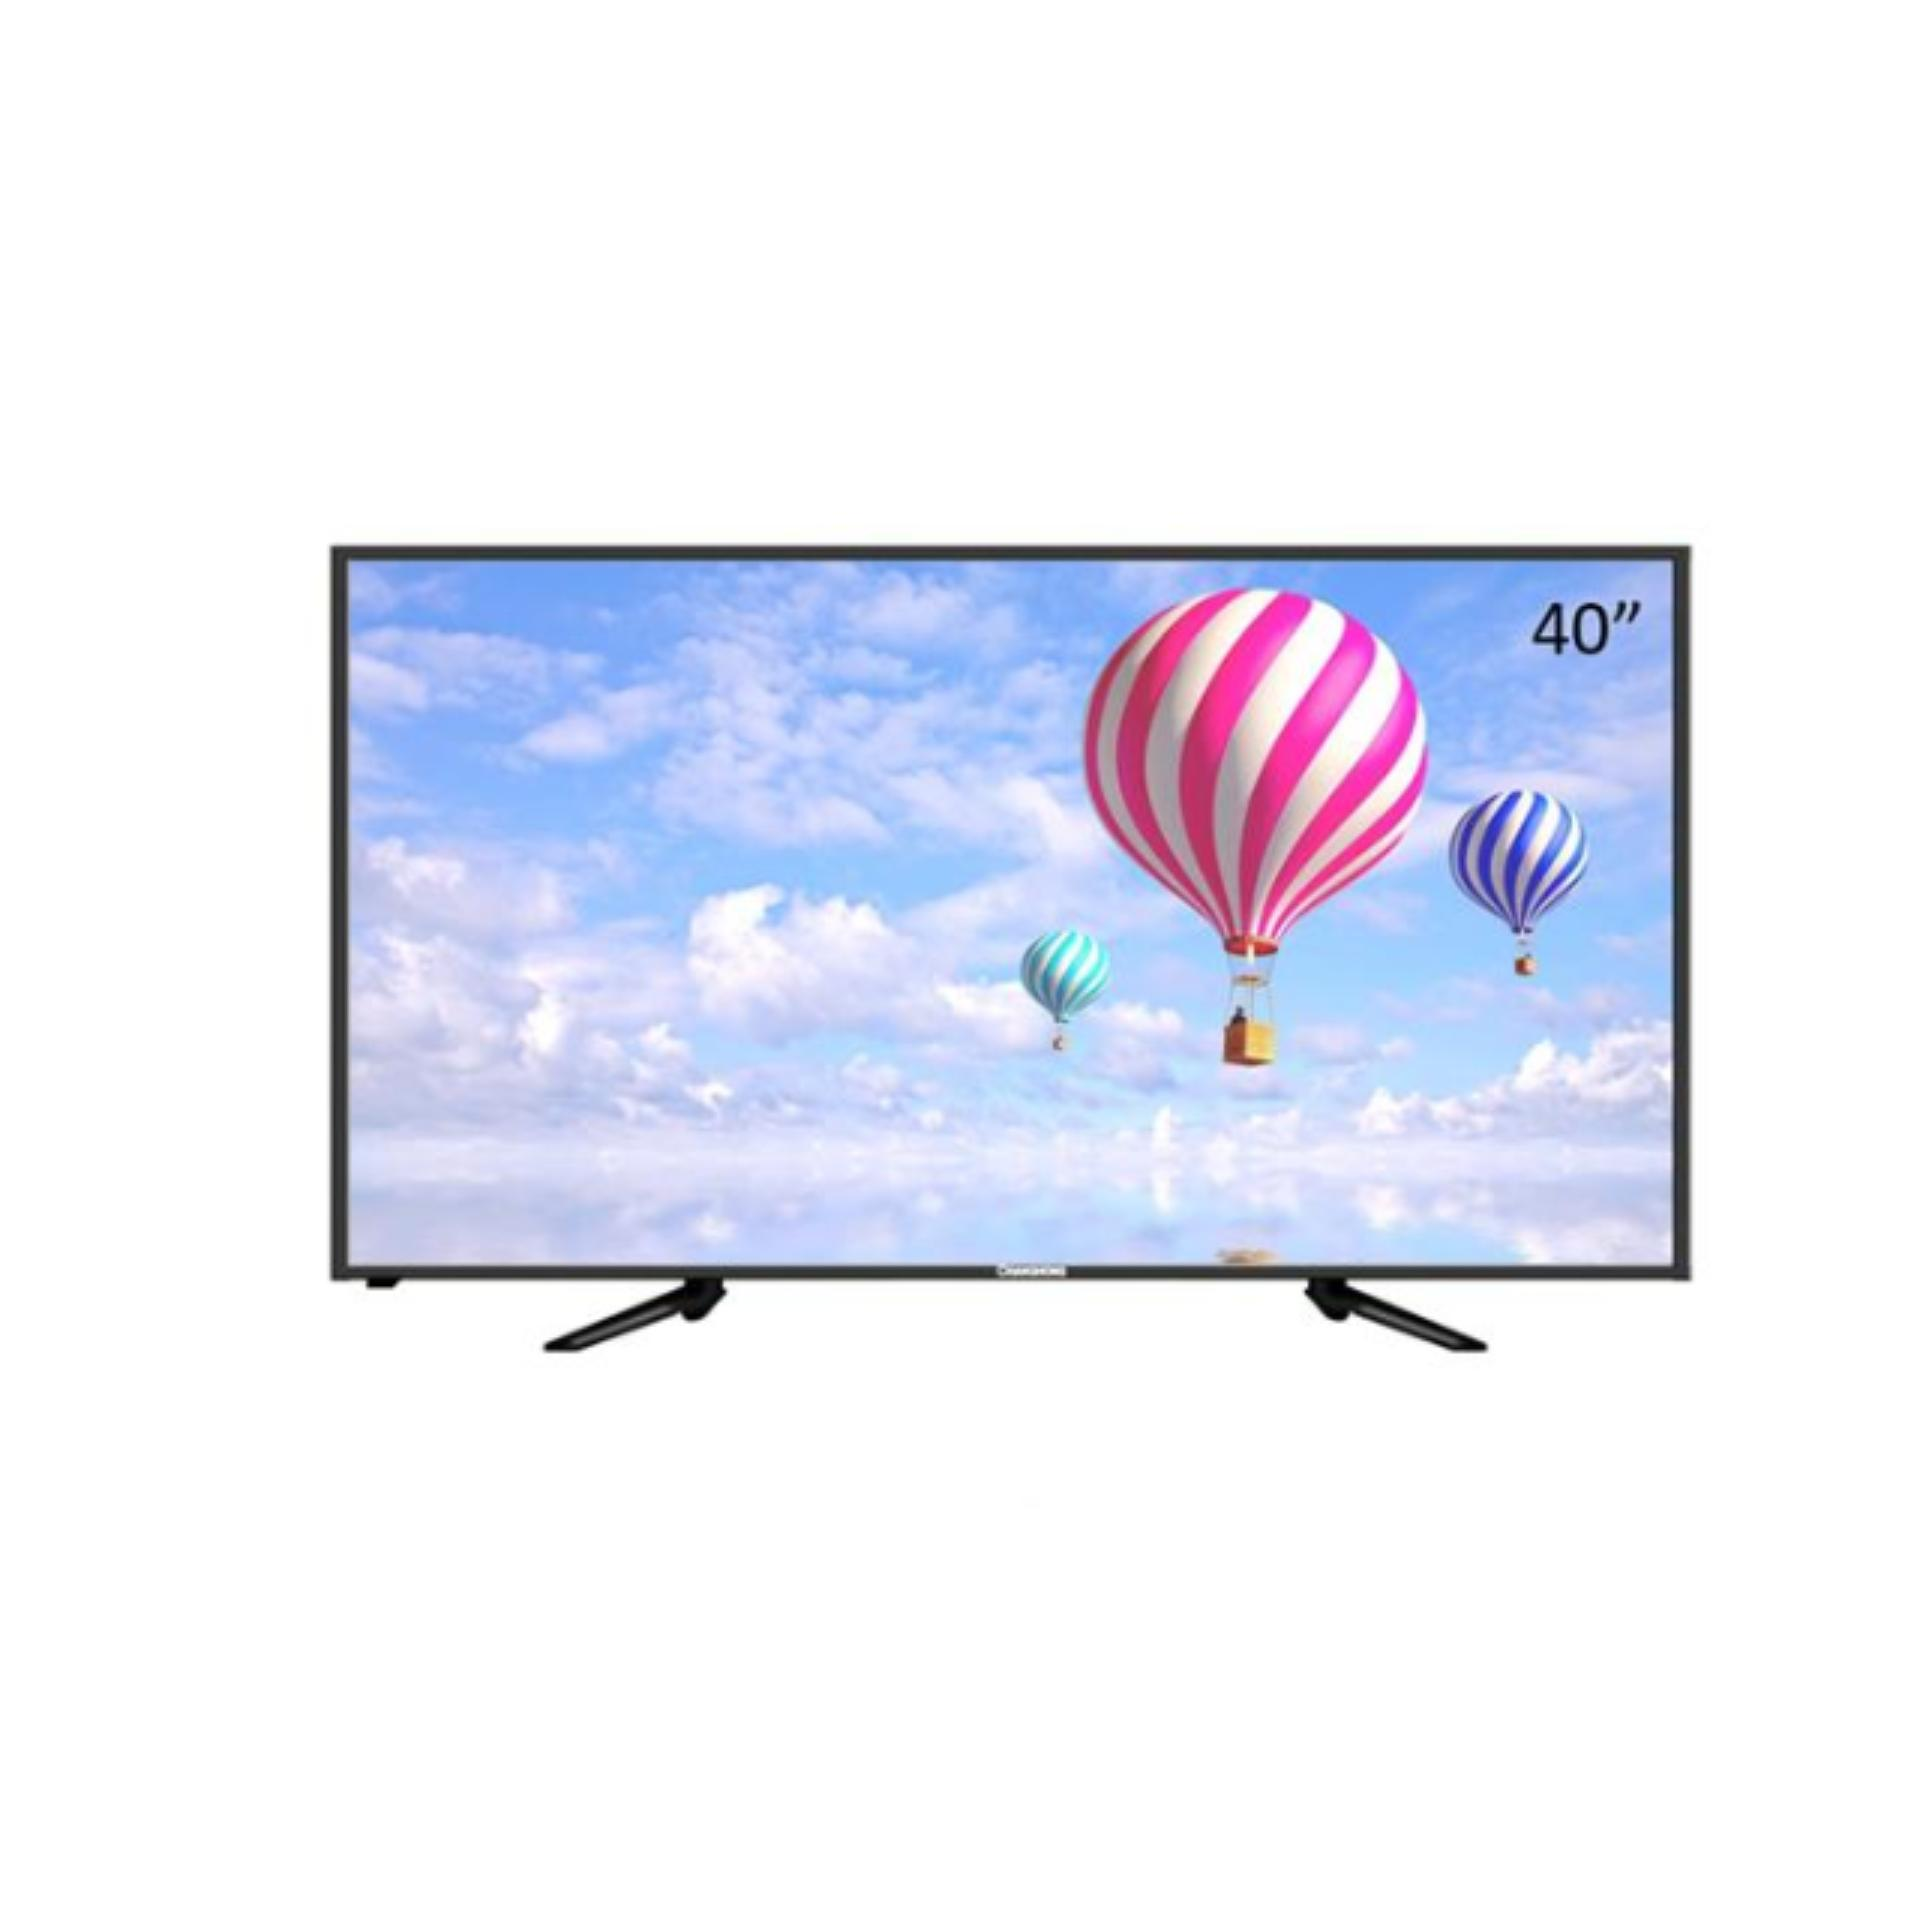 Changhong Led Smart Android Full HD TV 40 Inch L40G5i